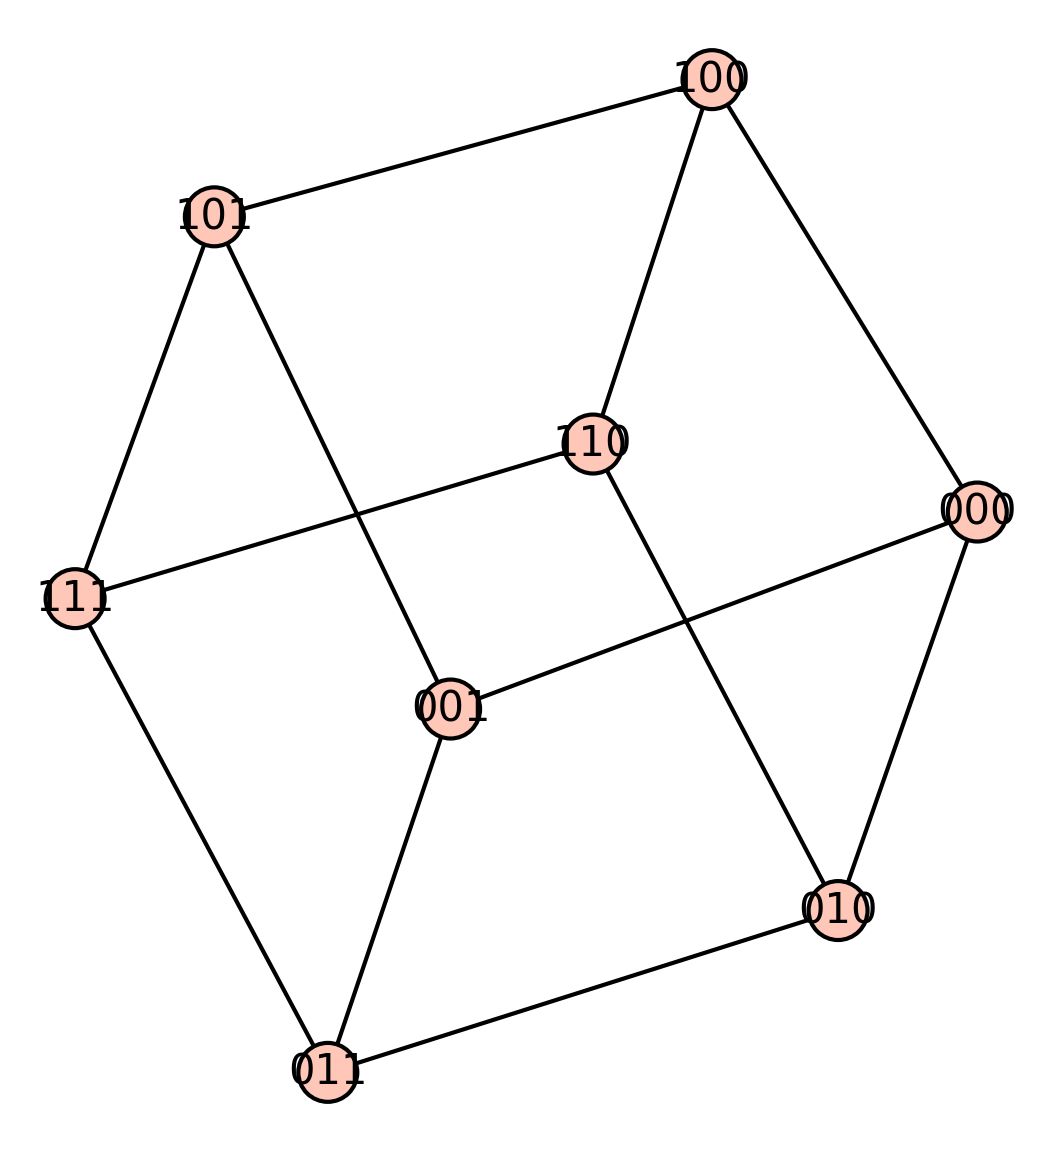 graph theory The seven bridges of konigsberg problem was solved by euler in 1735 and that was the beginning of graph theory in this video, we explain the problem and the method that euler used to solve it.